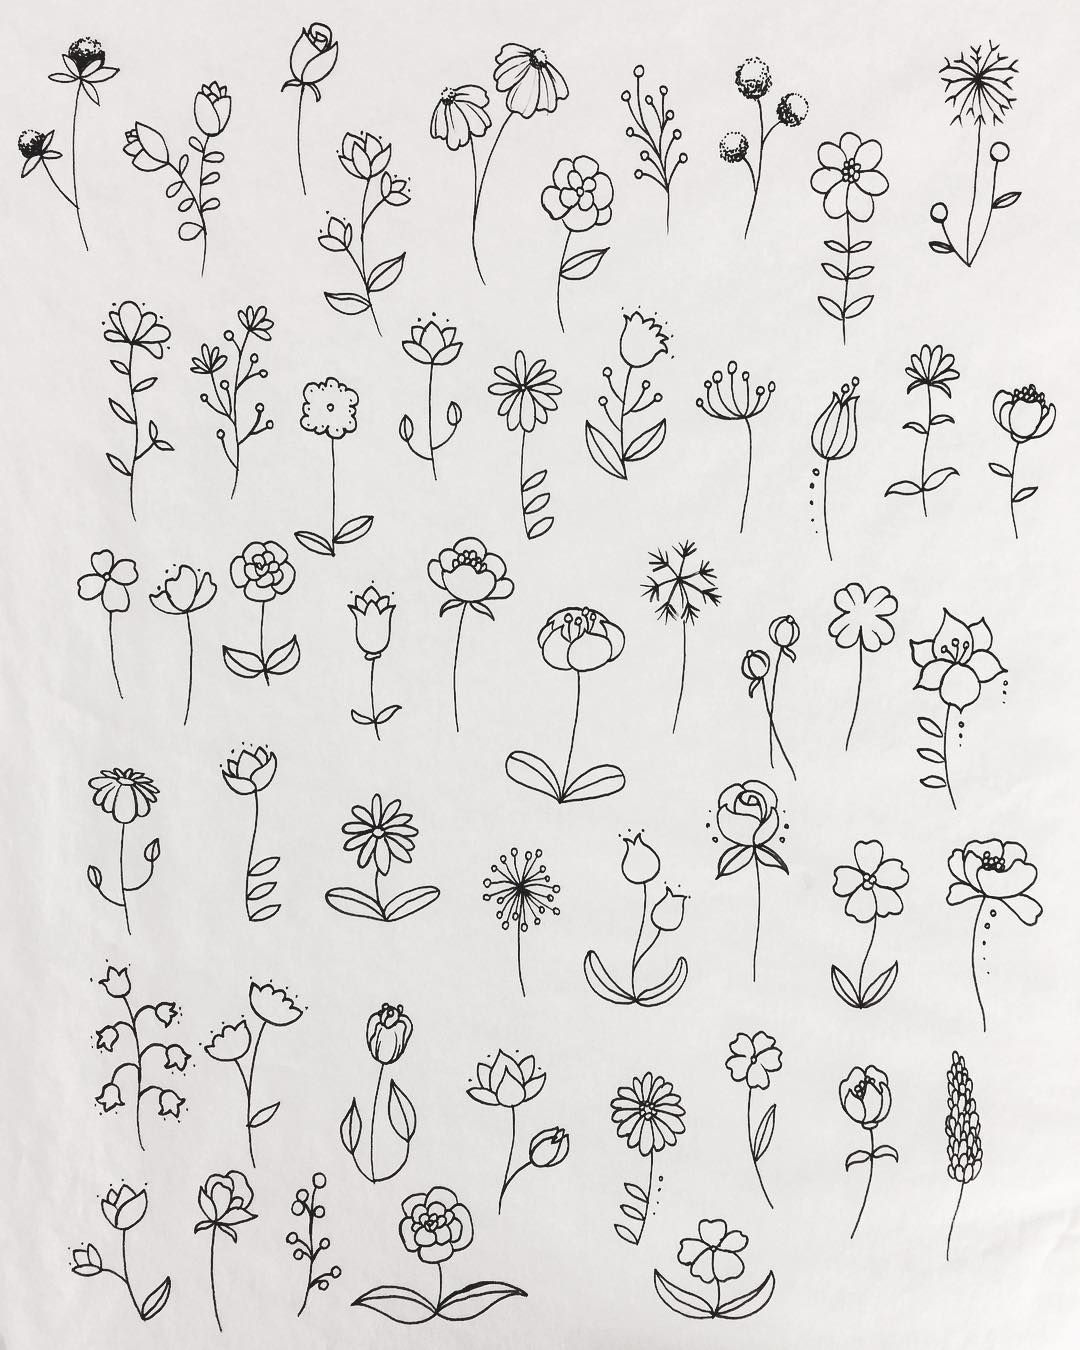 55 Simple Small Flowers Tattoos Drawing Tattoos Ideas For Women